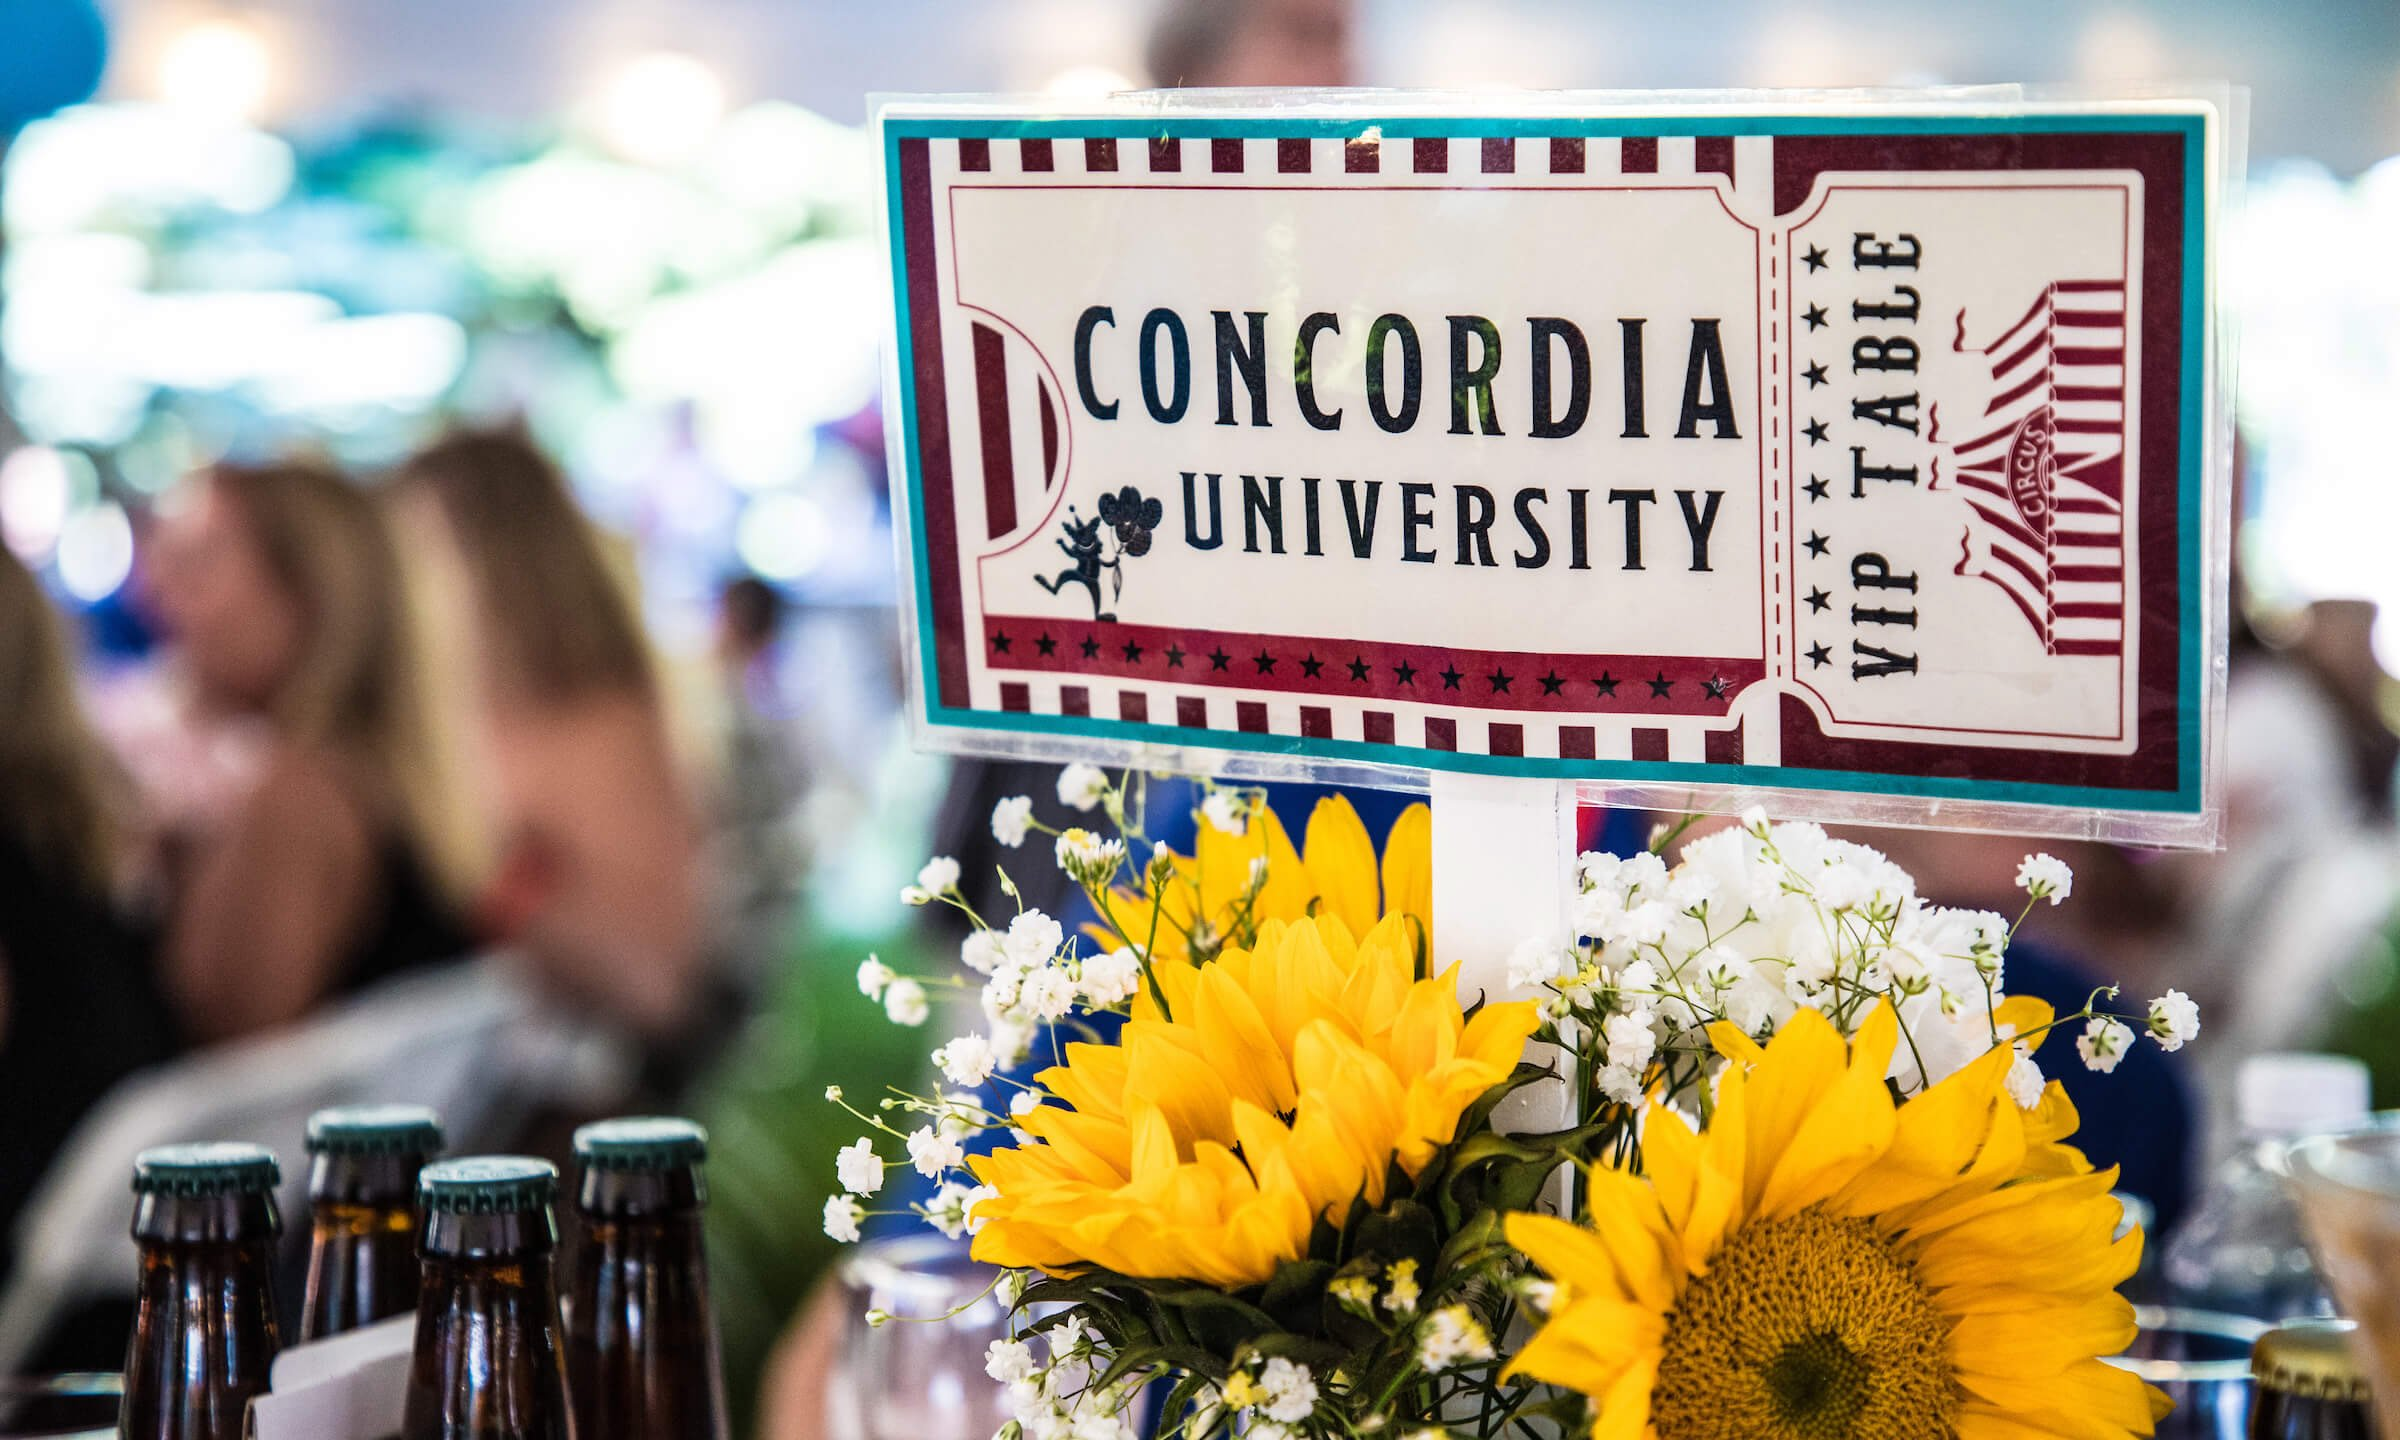 Worth the show: Concordia's efforts to keep seniors safe and happy at home highlighted at 2019 June-A-Palooza